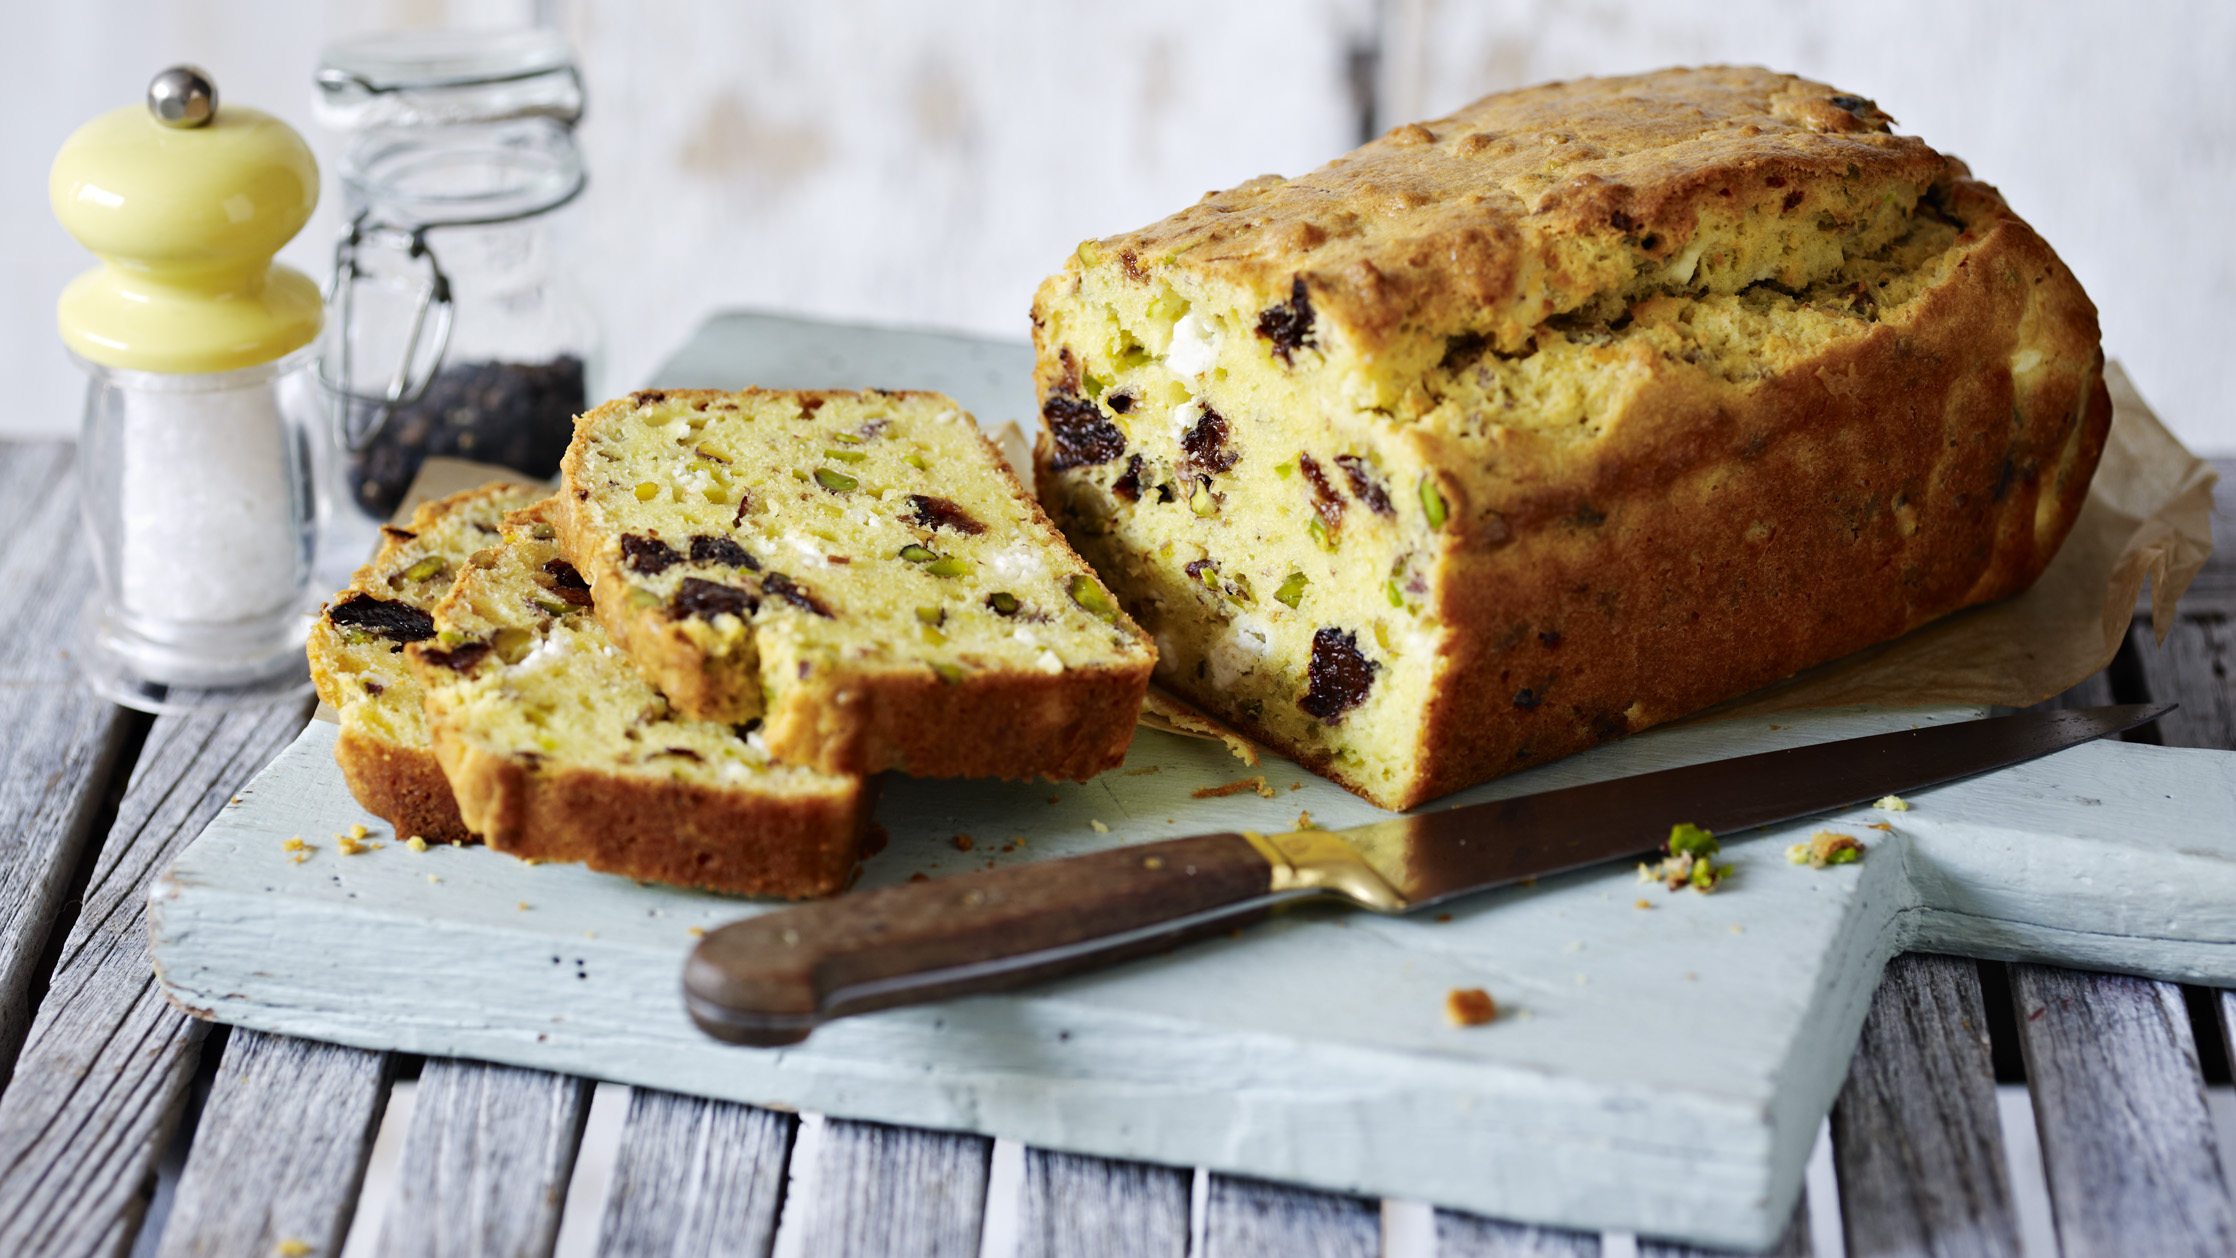 Cheese pistachio and prune cake recipe bbc food forumfinder Images